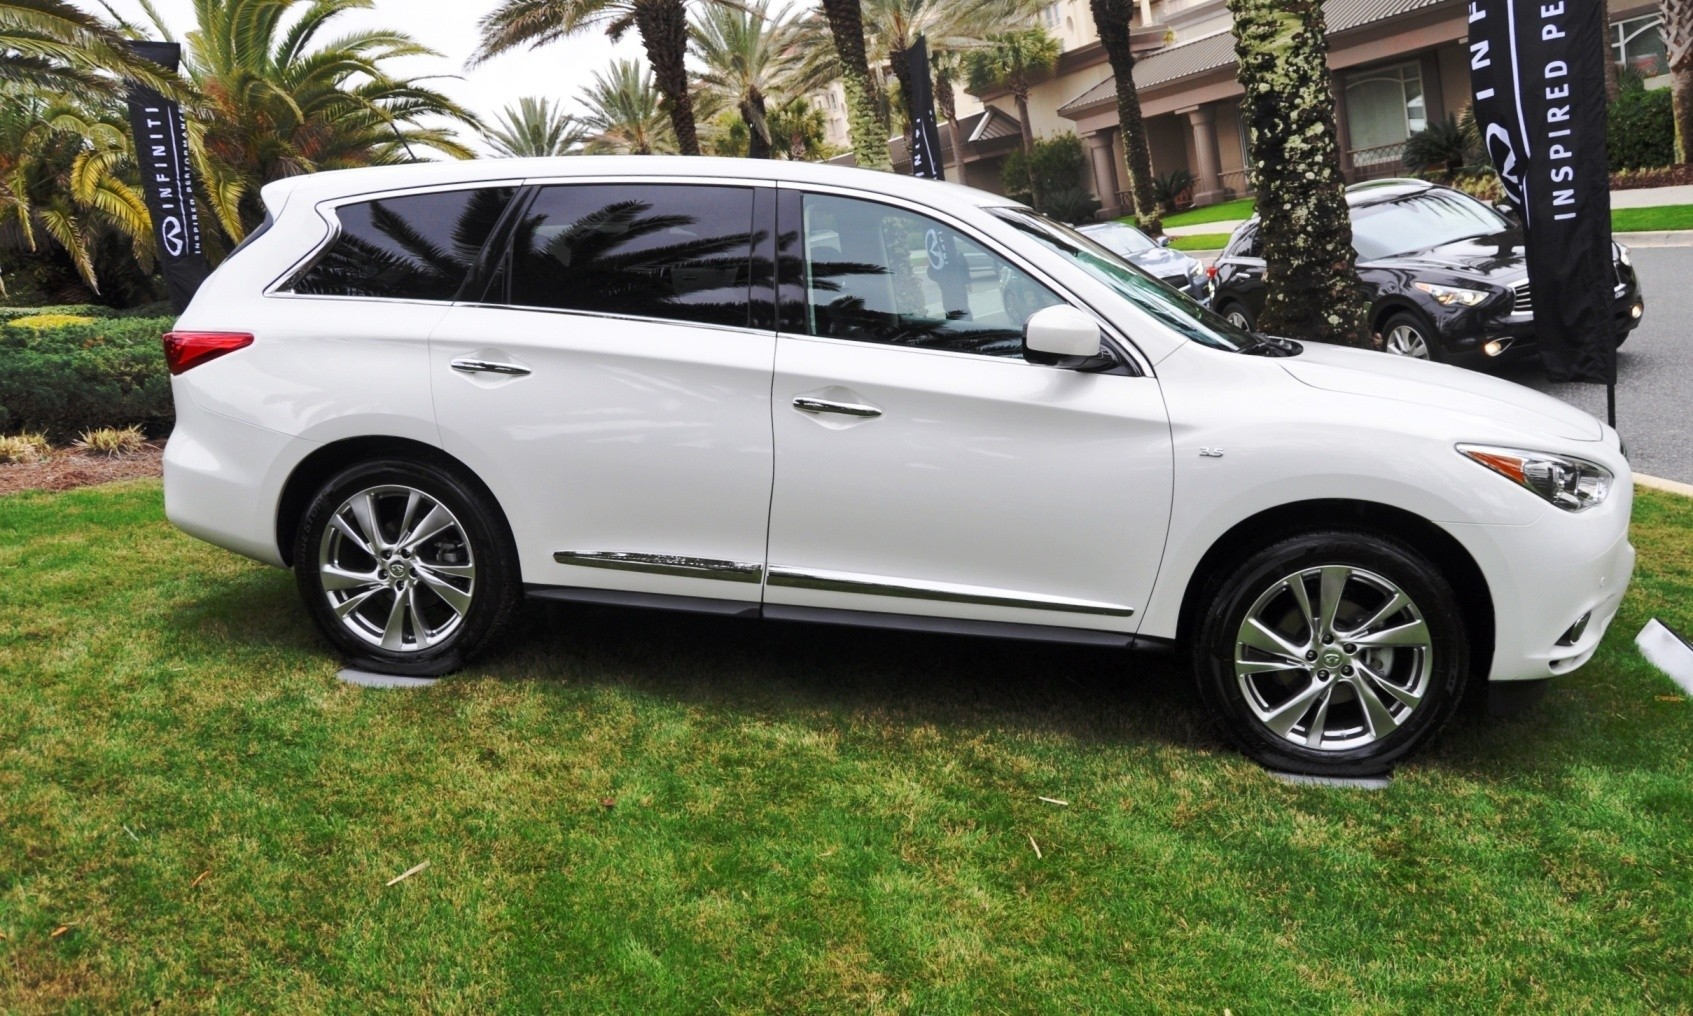 2015 INFINITI QX60 Buyers Guide - Colors, Pricing, Options